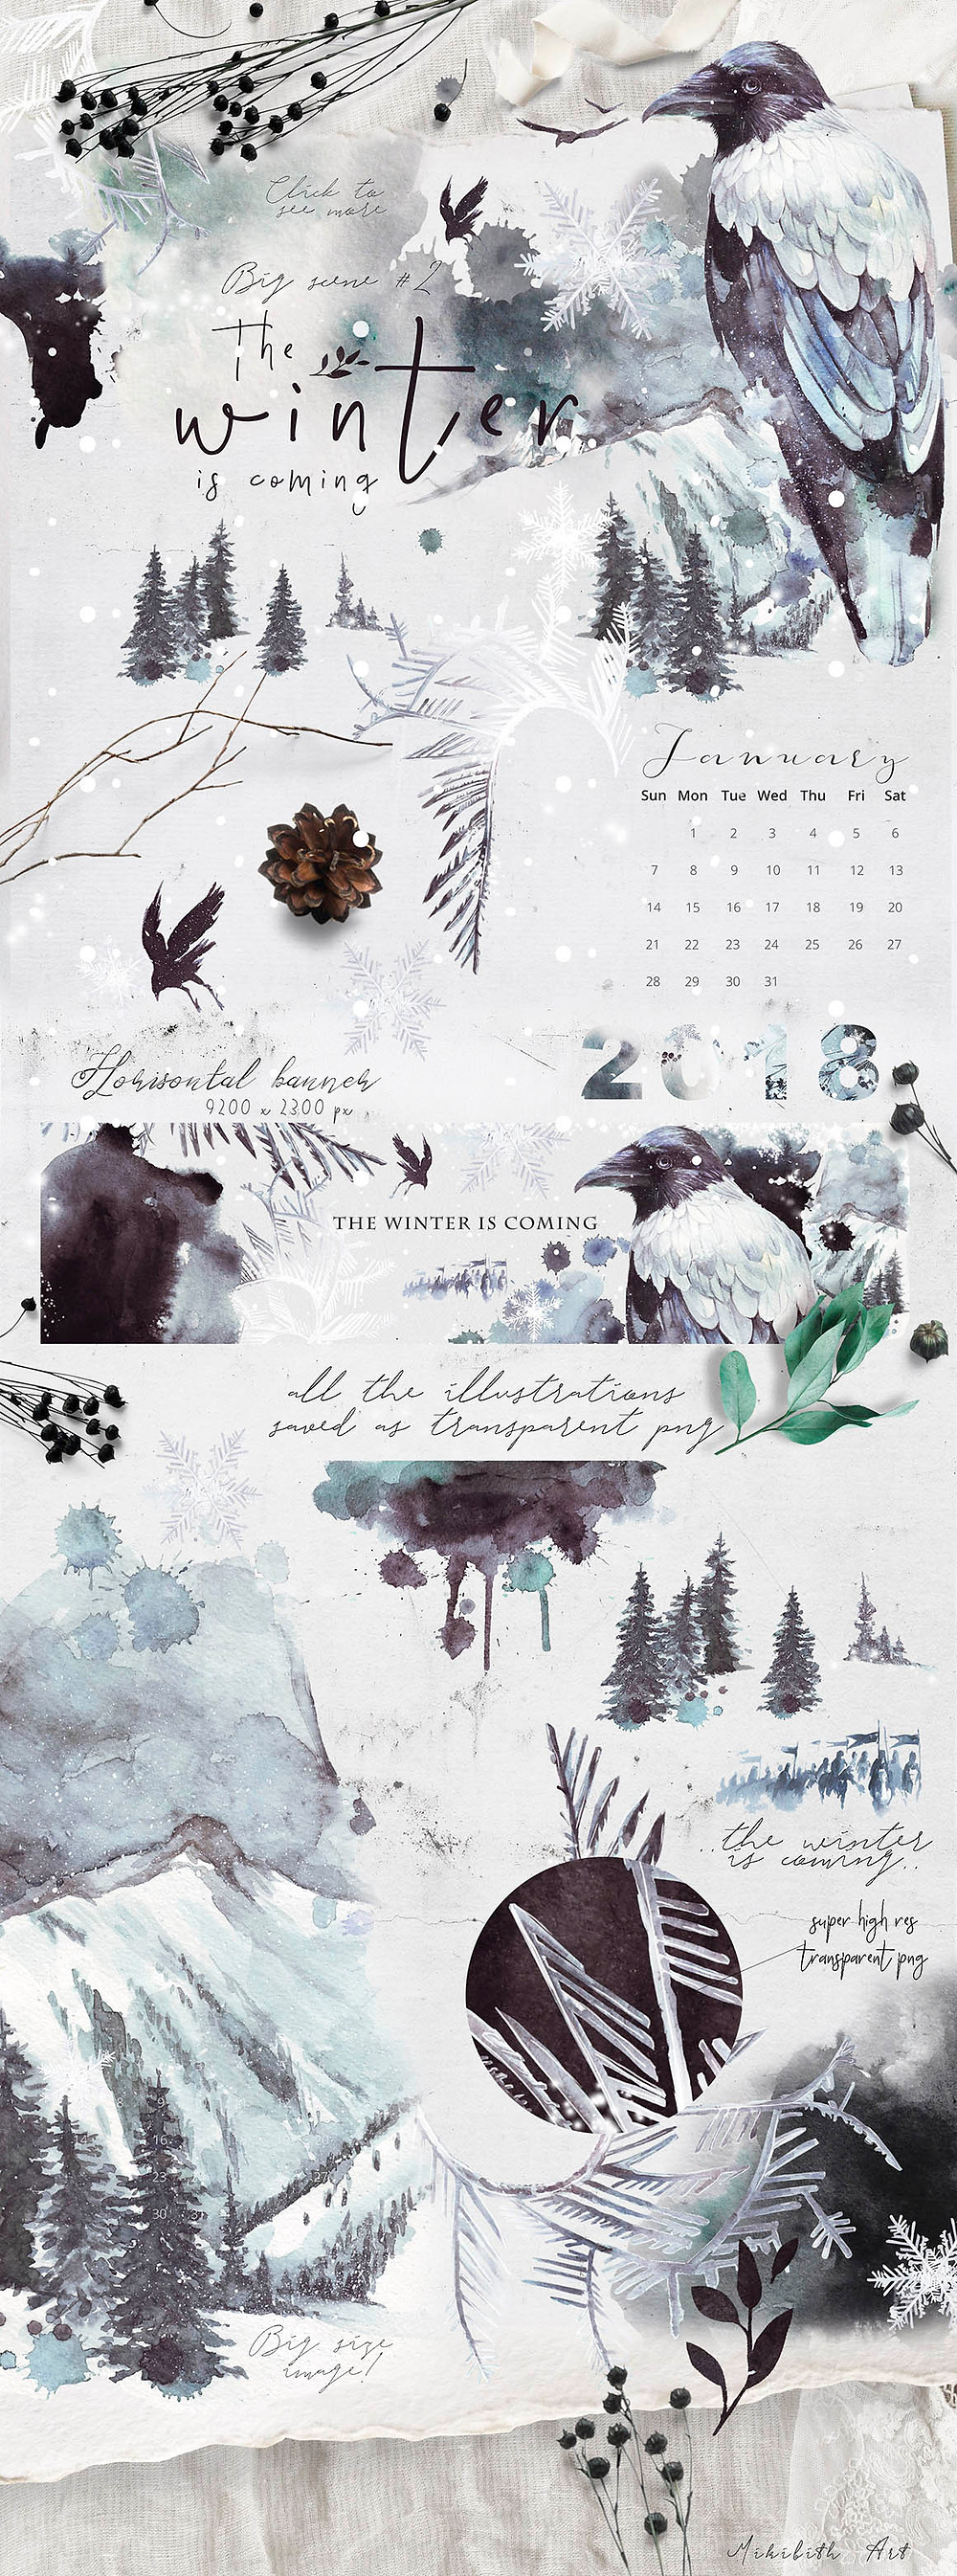 winter calendar crows